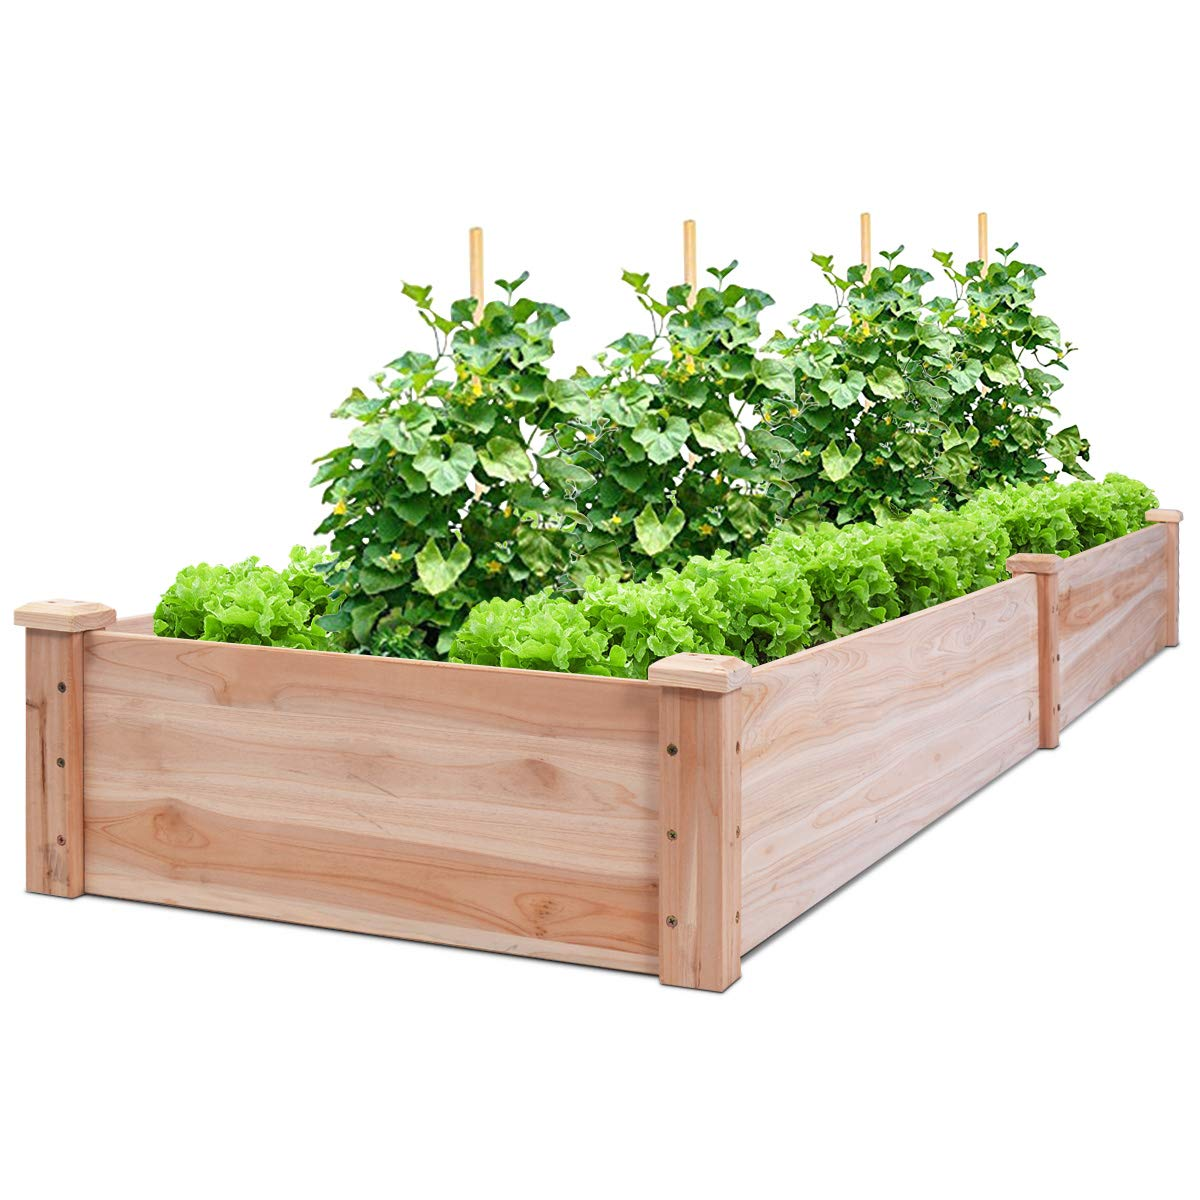 Giantex Raised Garden Bed Planter, Wooden Elevated Vegetable Planter Kit Box Grow for Patio Deck Balcony Outdoor Gardening, Natural (96''X24''X10'') by Giantex